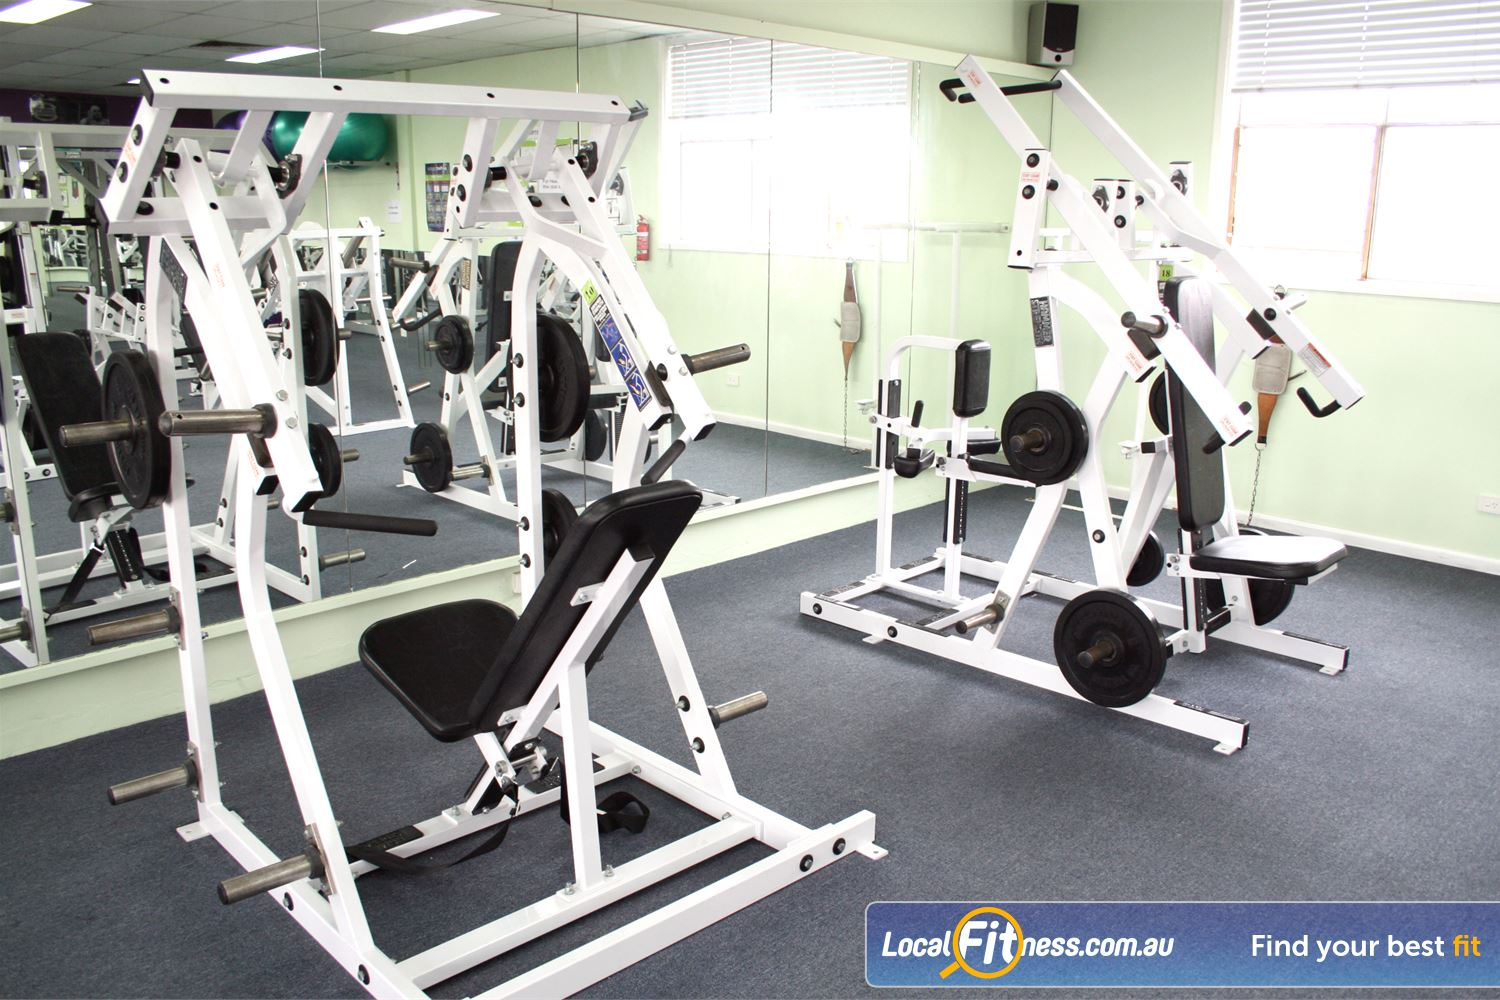 Berry Fitness Centre Near Seaford Enjoy state of the art strength equipment 24 hours a day.